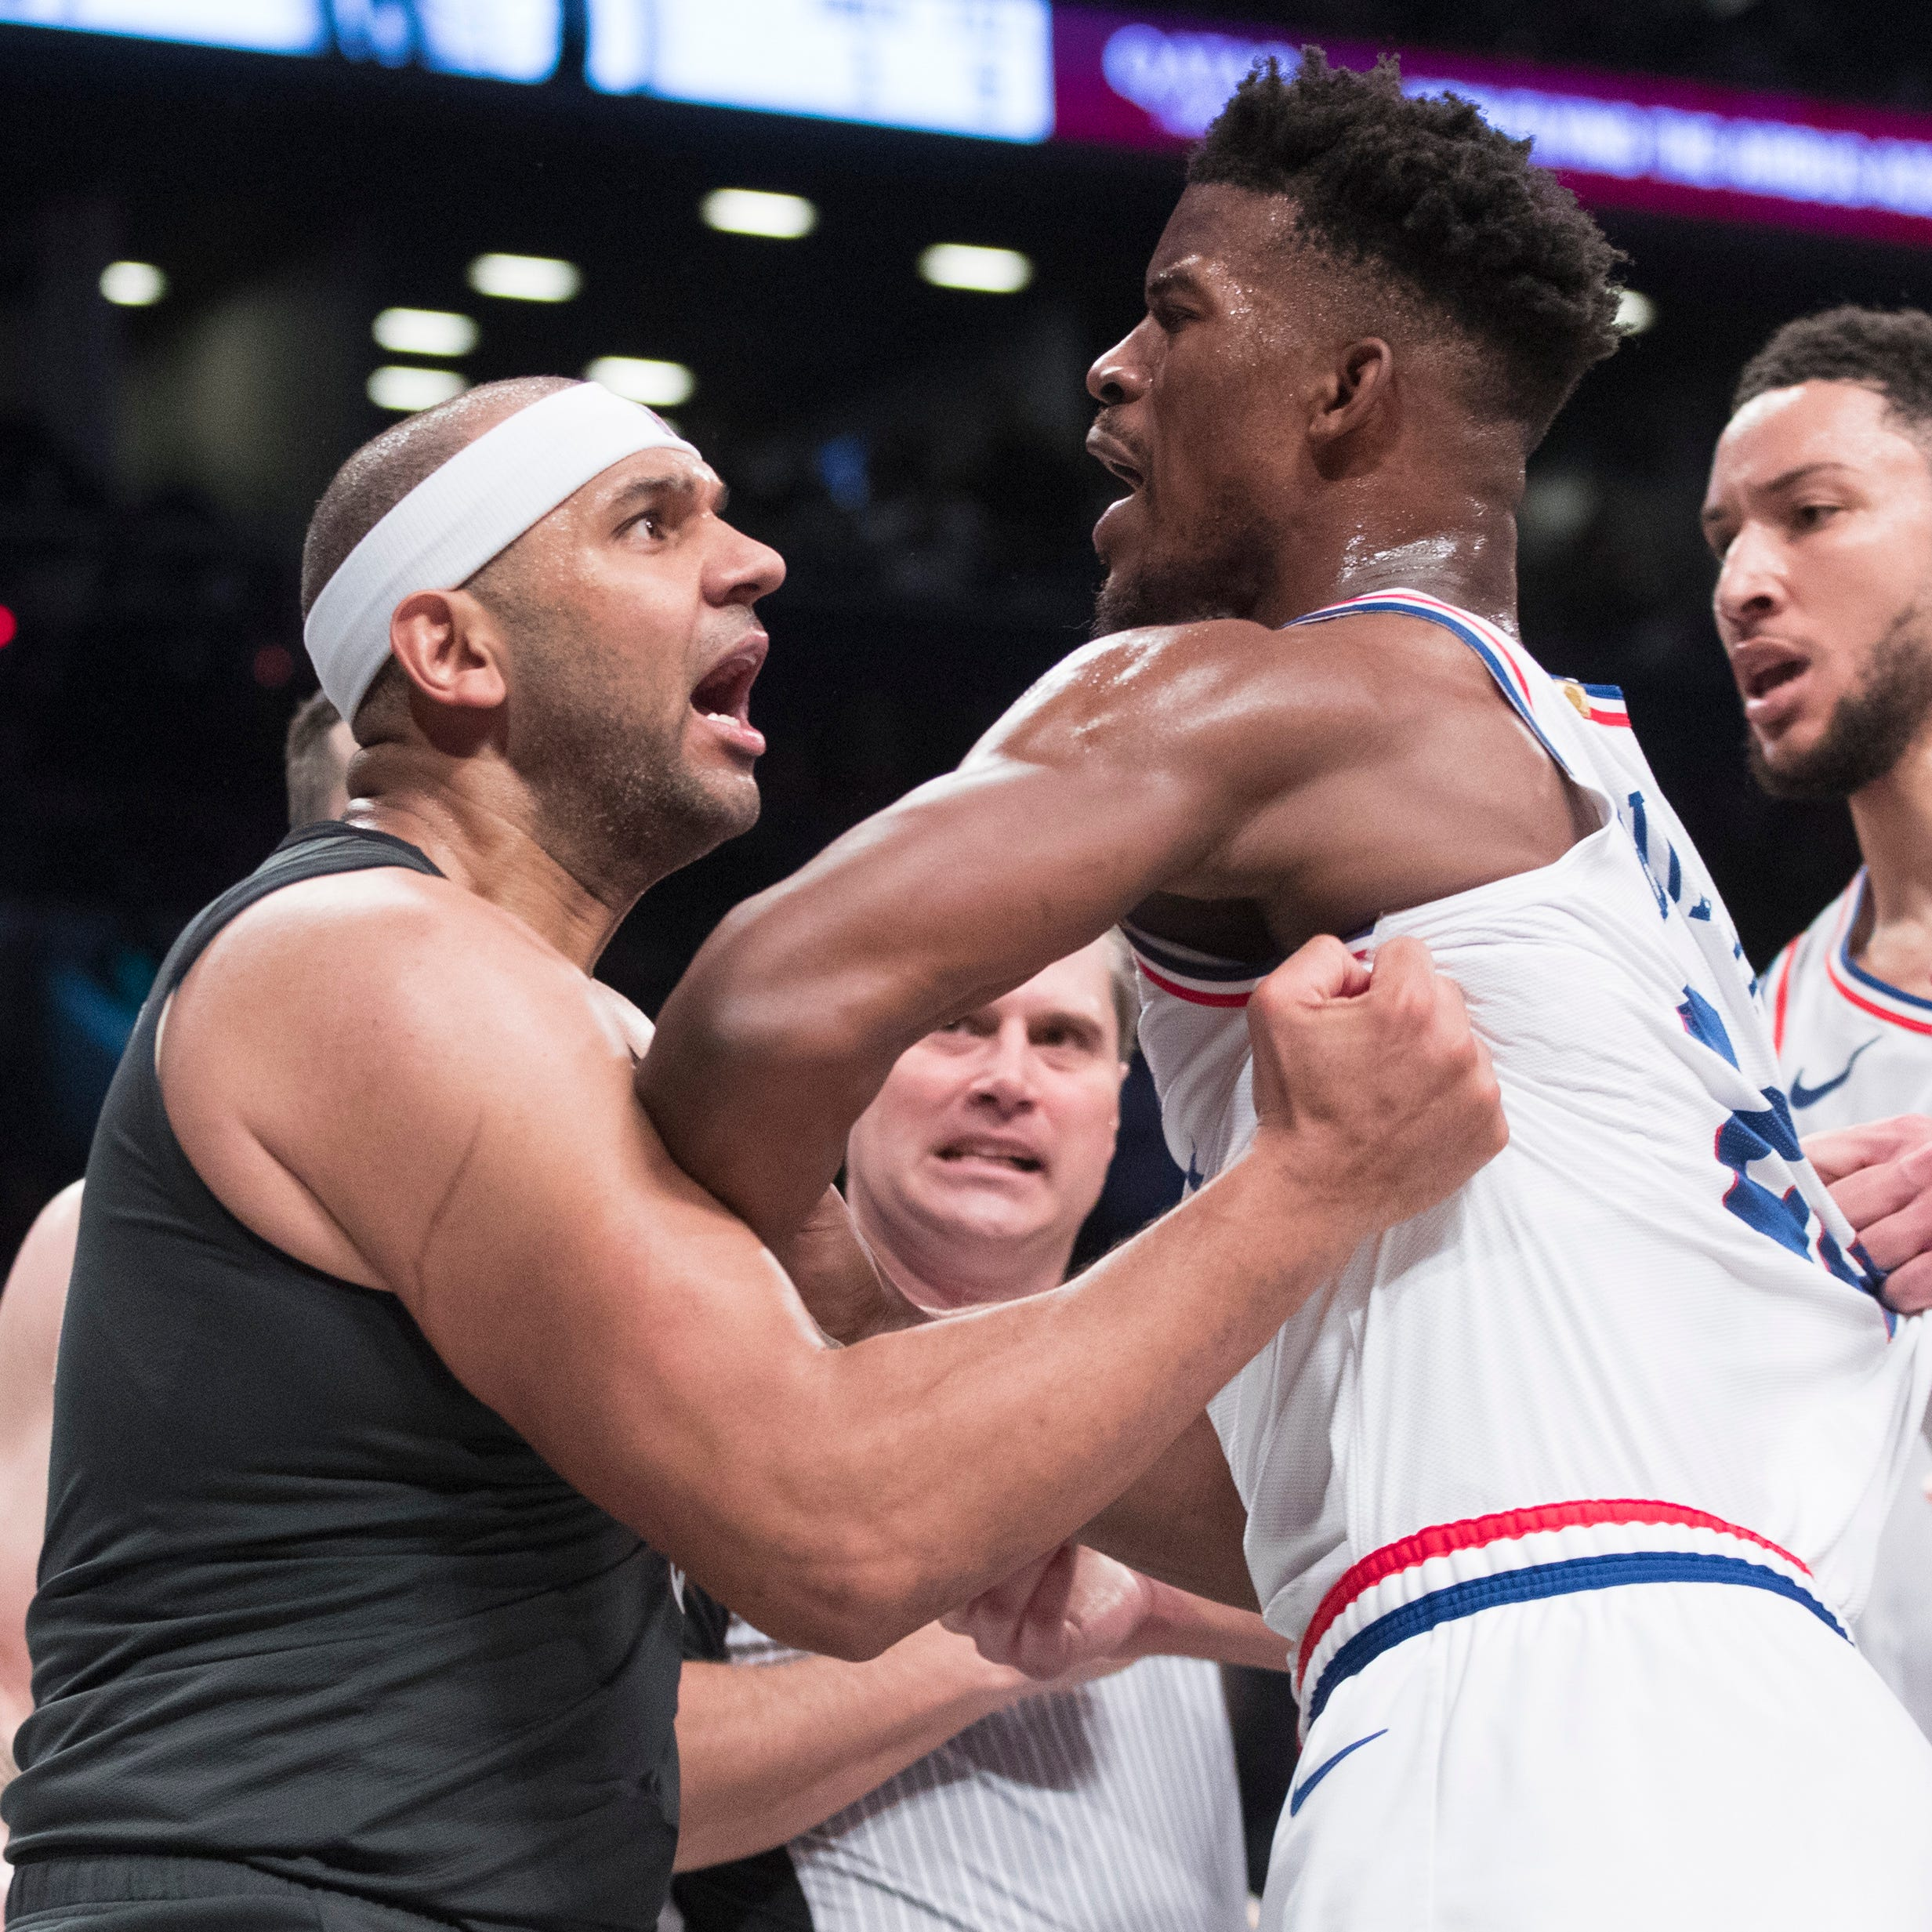 Jimmy Butler, Jared Dudley ejected after skirmish between 76ers, Nets